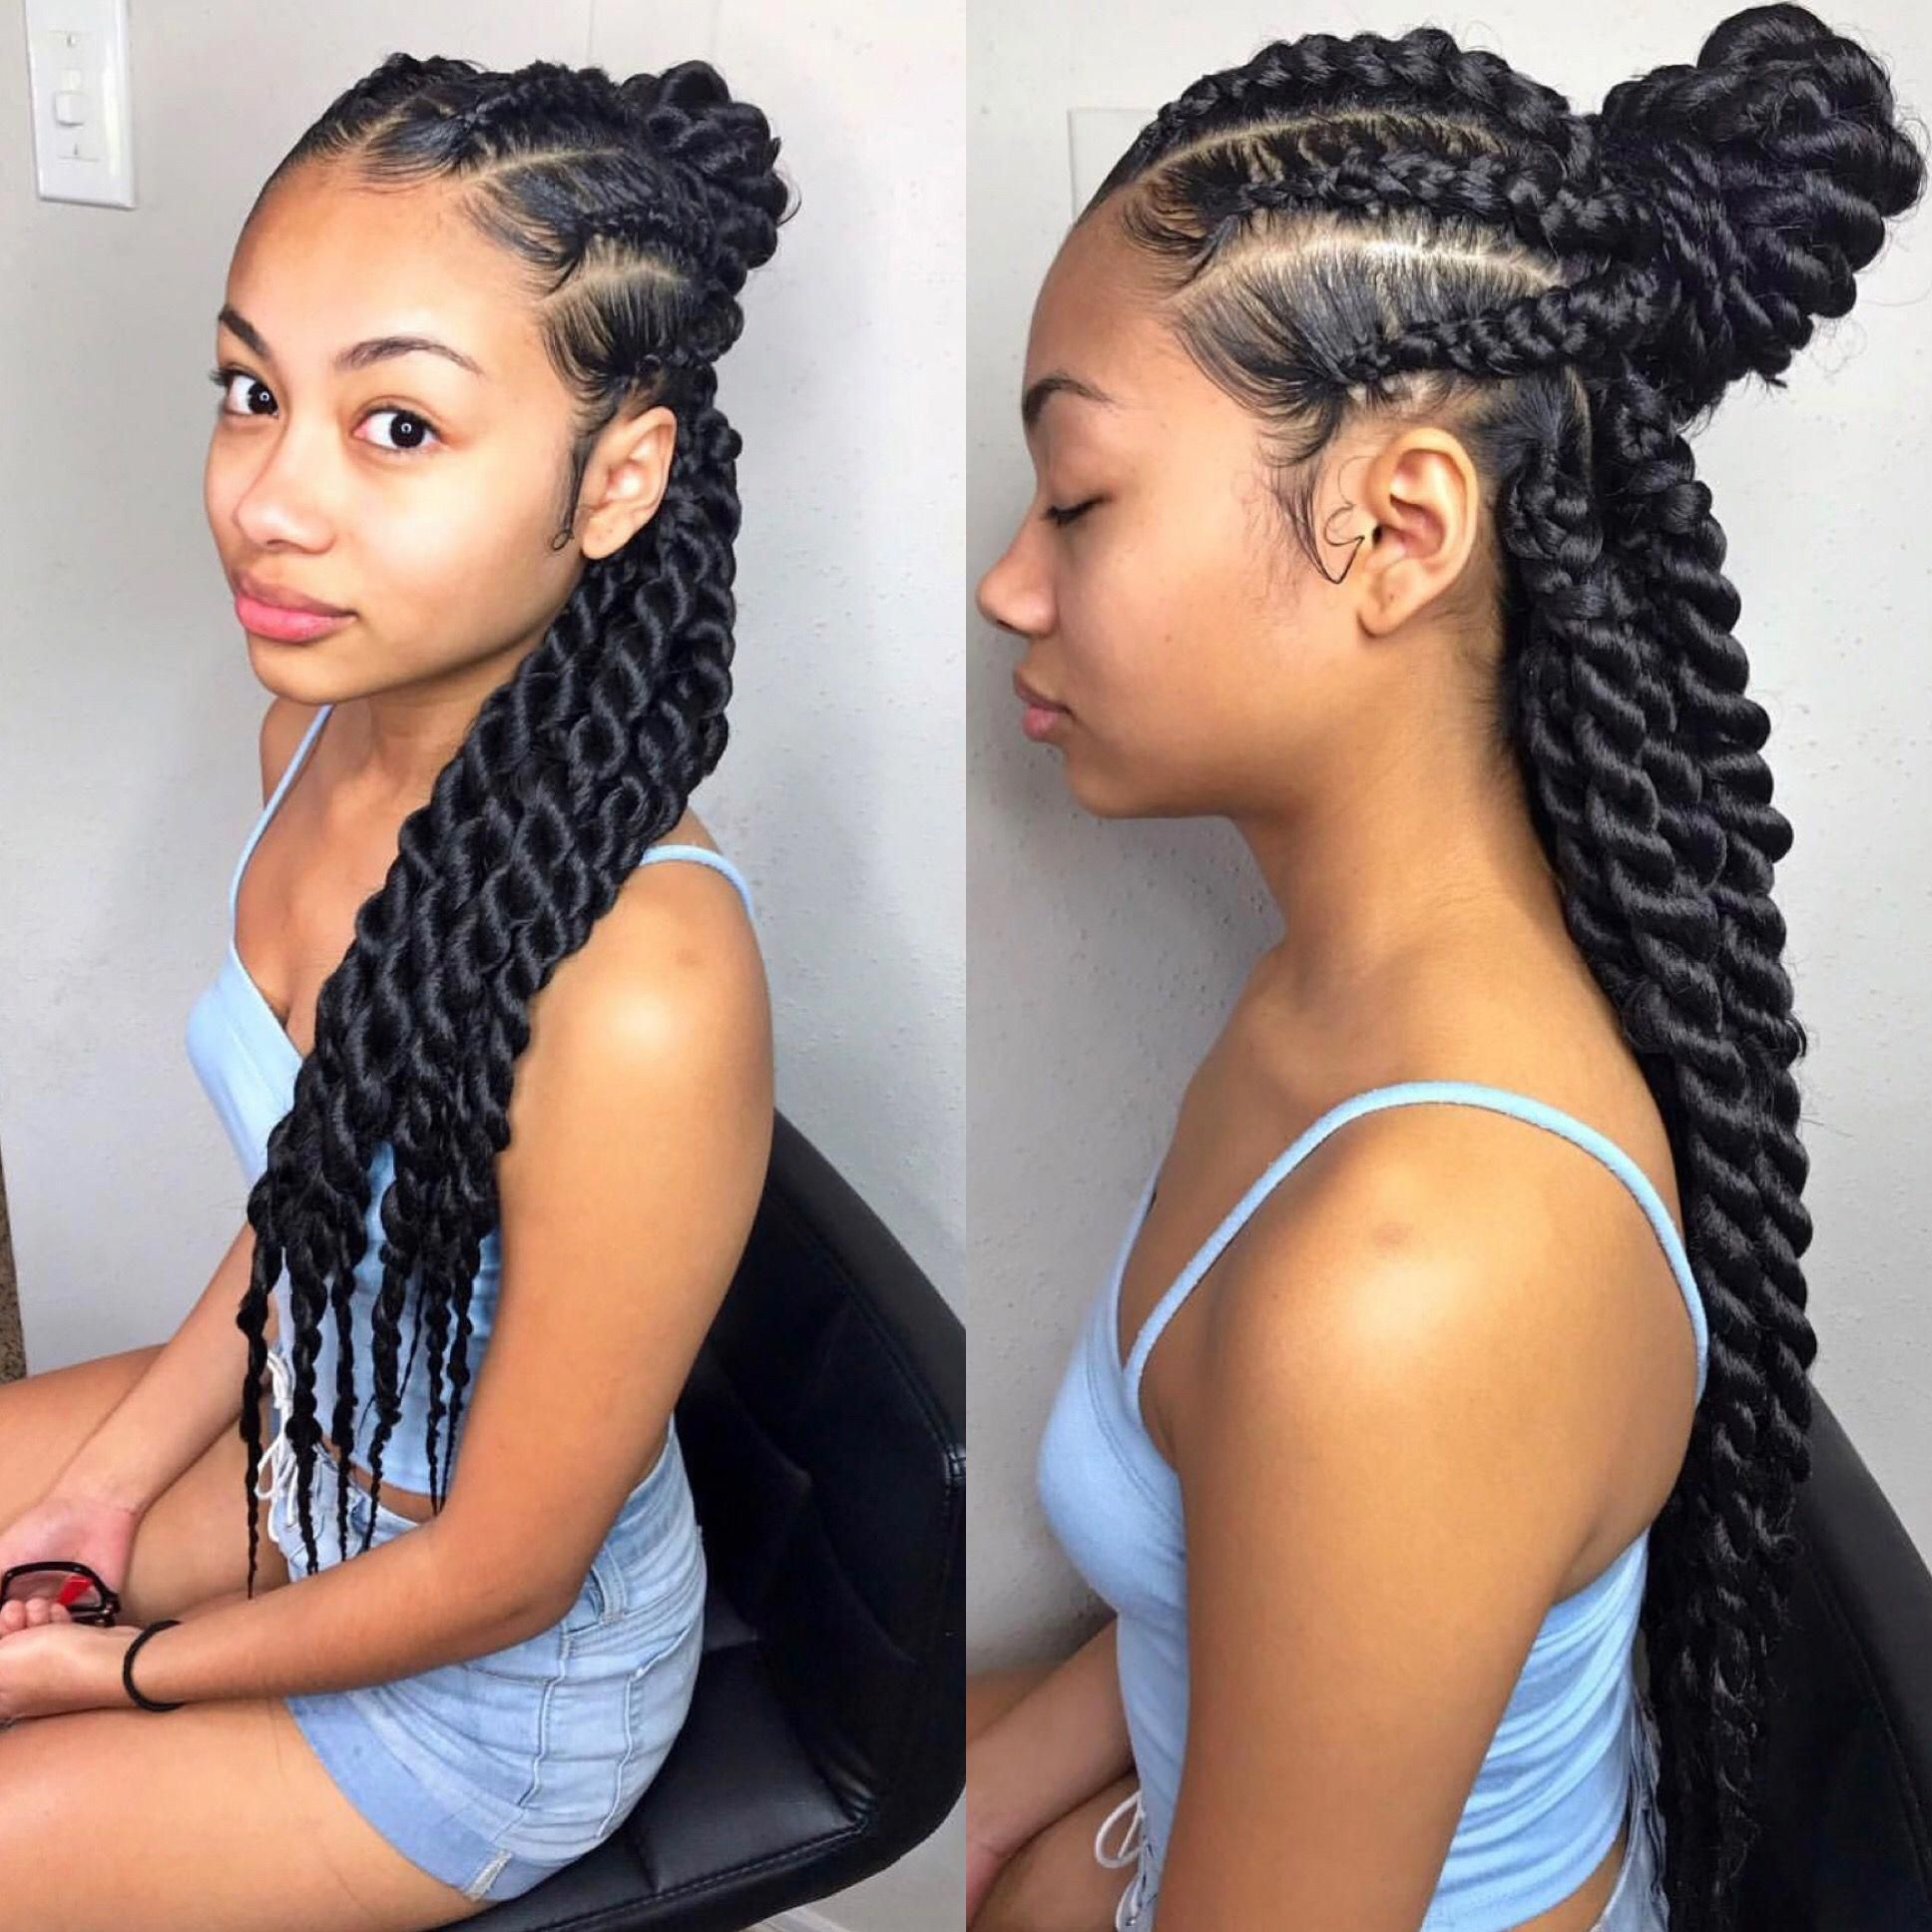 Half Up Half Down Twists By Trapprinzess On Ig Weddinghairstyles Half Braided Hairstyles Cool Braid Hairstyles Cornrow Hairstyles